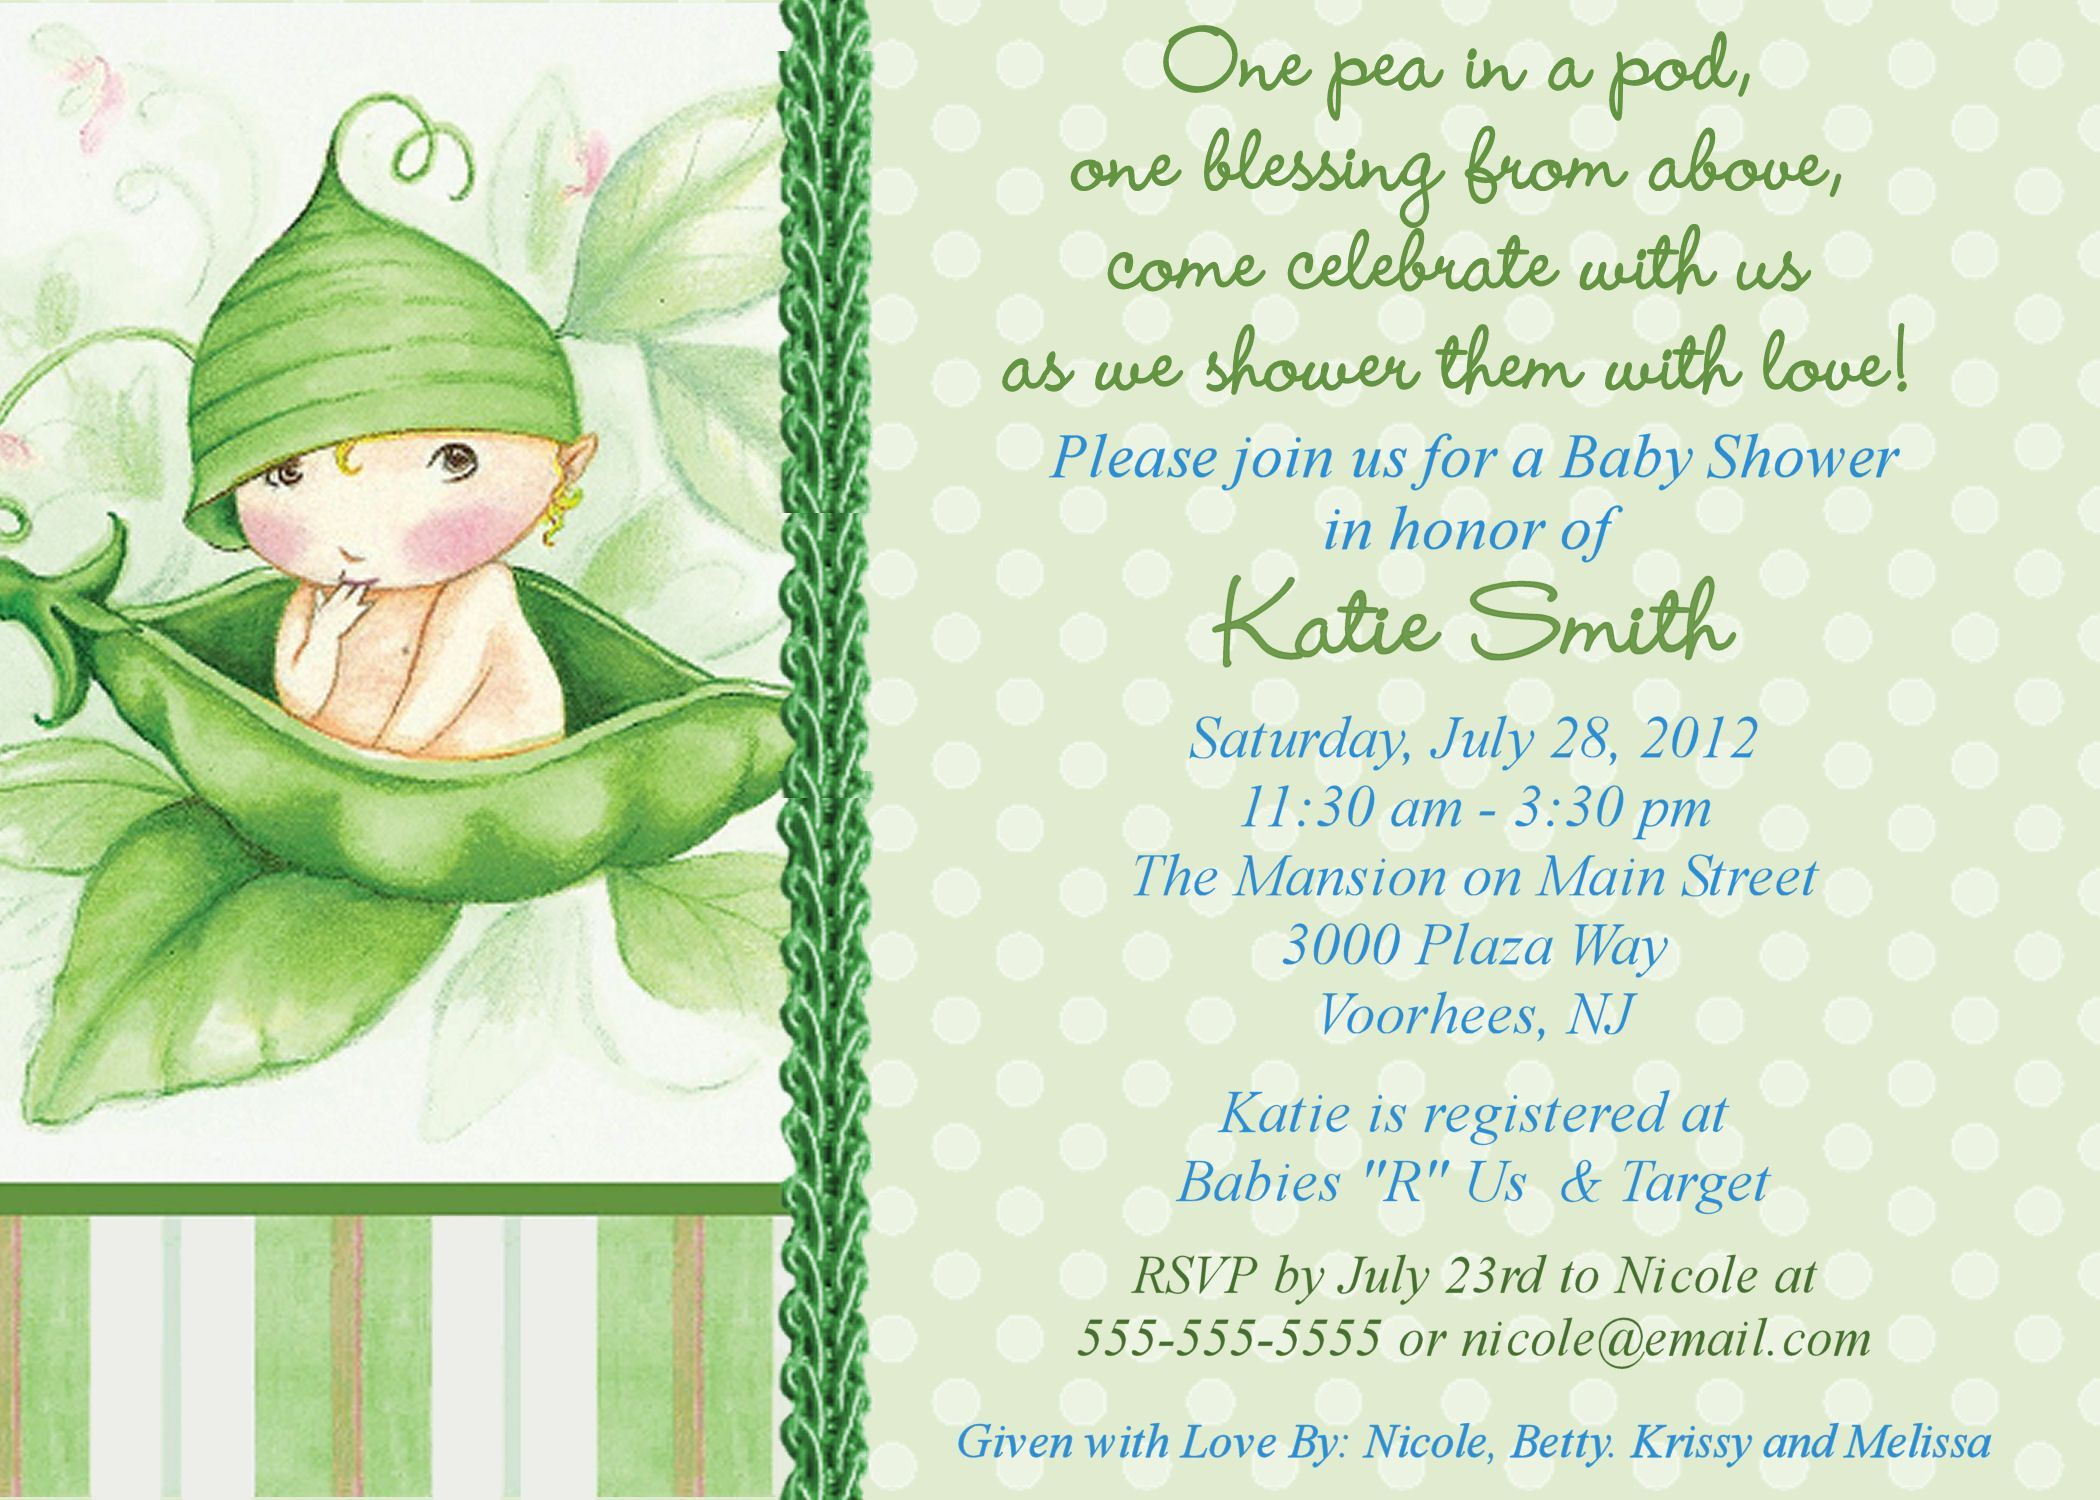 000 Exceptional Baby Shower Invitation Wording Example High Def  Examples Invite Coed Idea For BoyFull